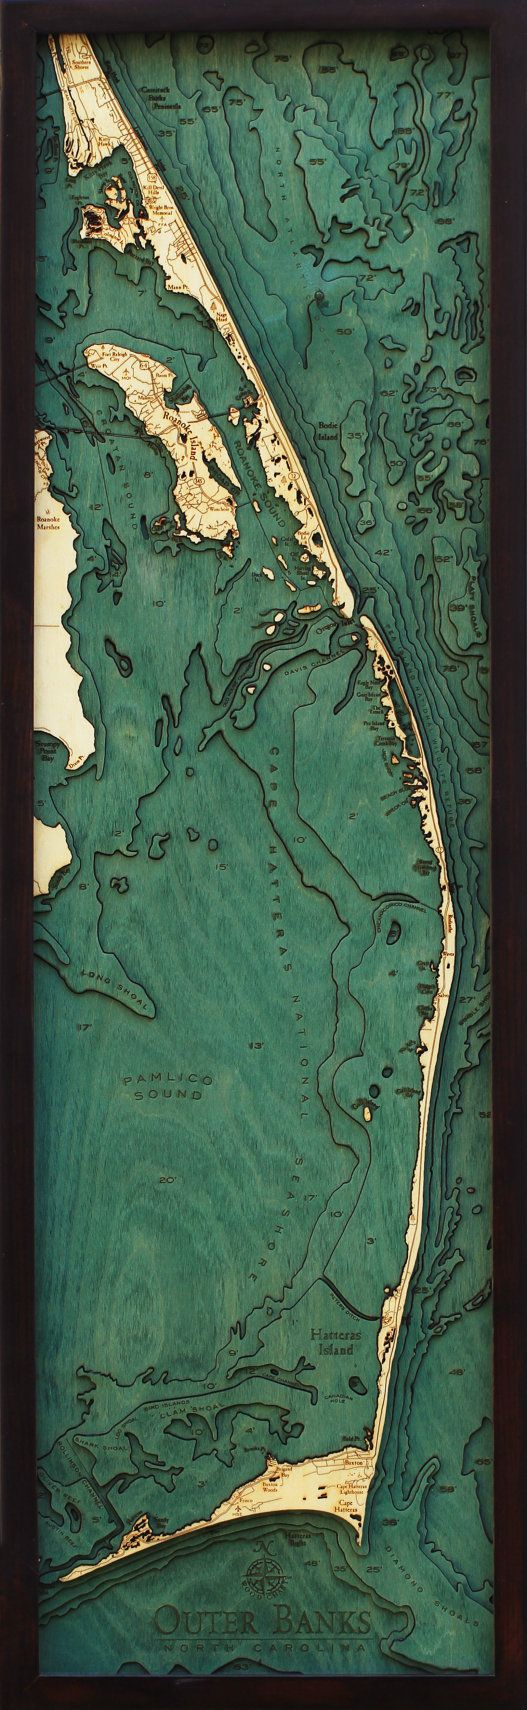 "THE OUTER BANKS, North Carolina 13.5"" x 43"", Laser-Cut, 3-Dimensional Topographic Wood Chart/Lake Art Map"